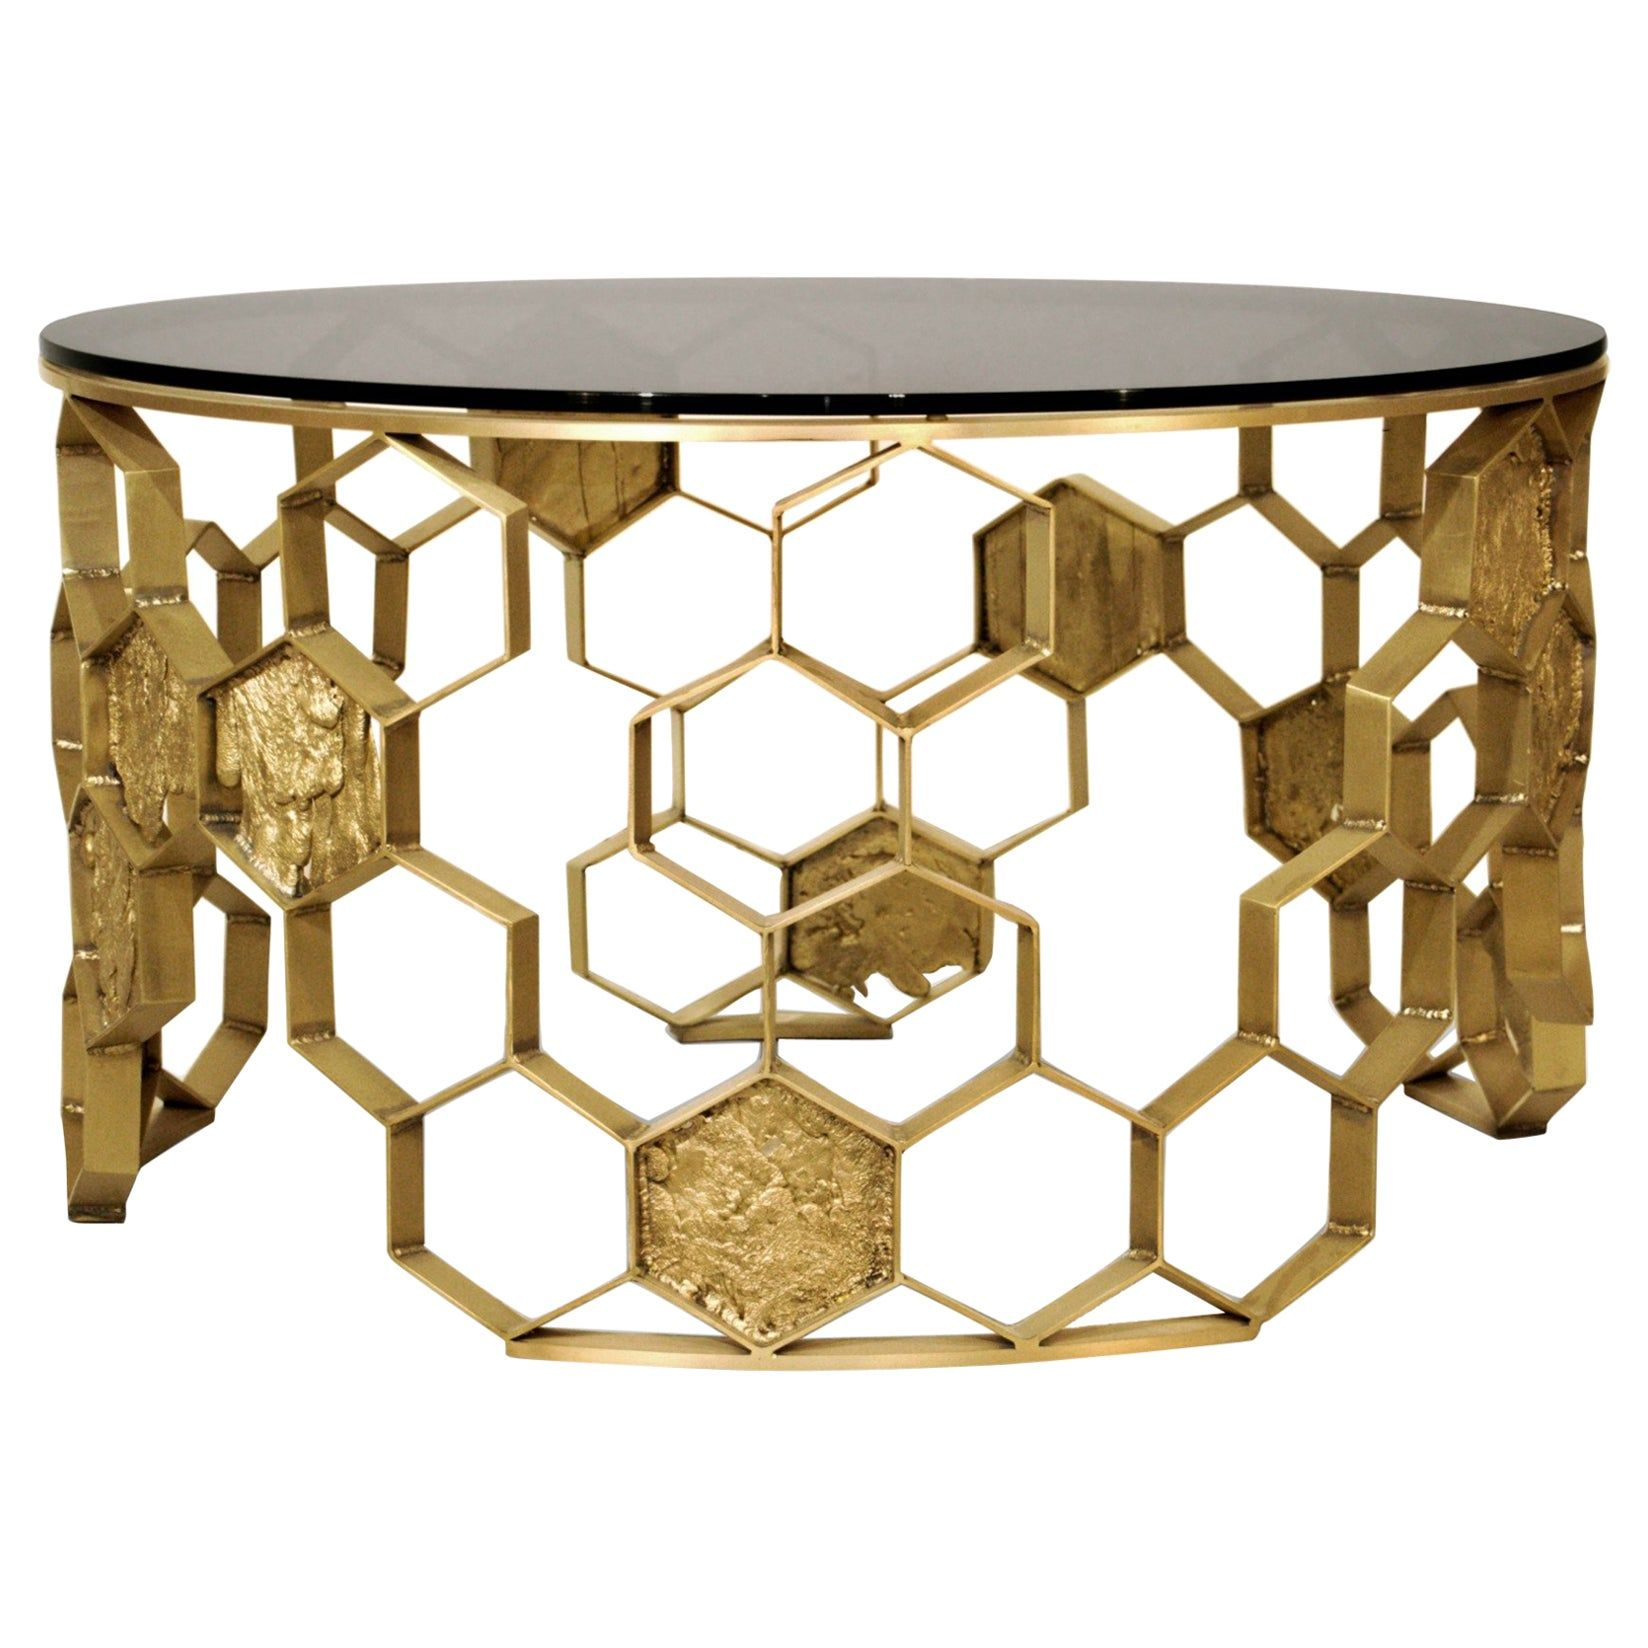 Sequoia Center Table In Brass With Walnut Top In 2021 Center Table Contemporary Coffee Table Stunning Interior Design [ 1648 x 1648 Pixel ]